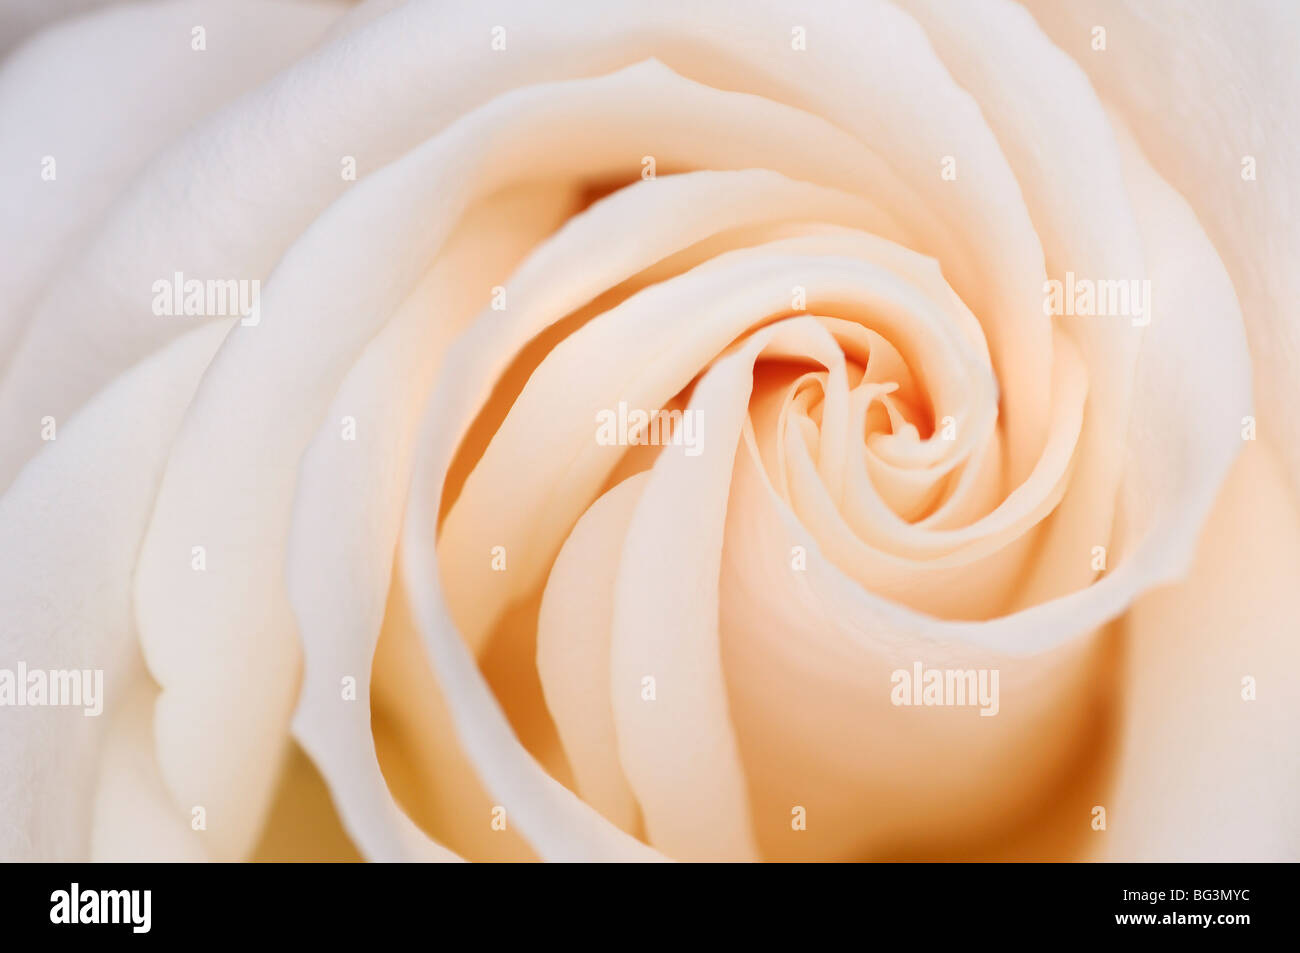 Abstract close up of the spiral layer whorl pattern of petals of a white flush hybrid tea rose - Stock Image